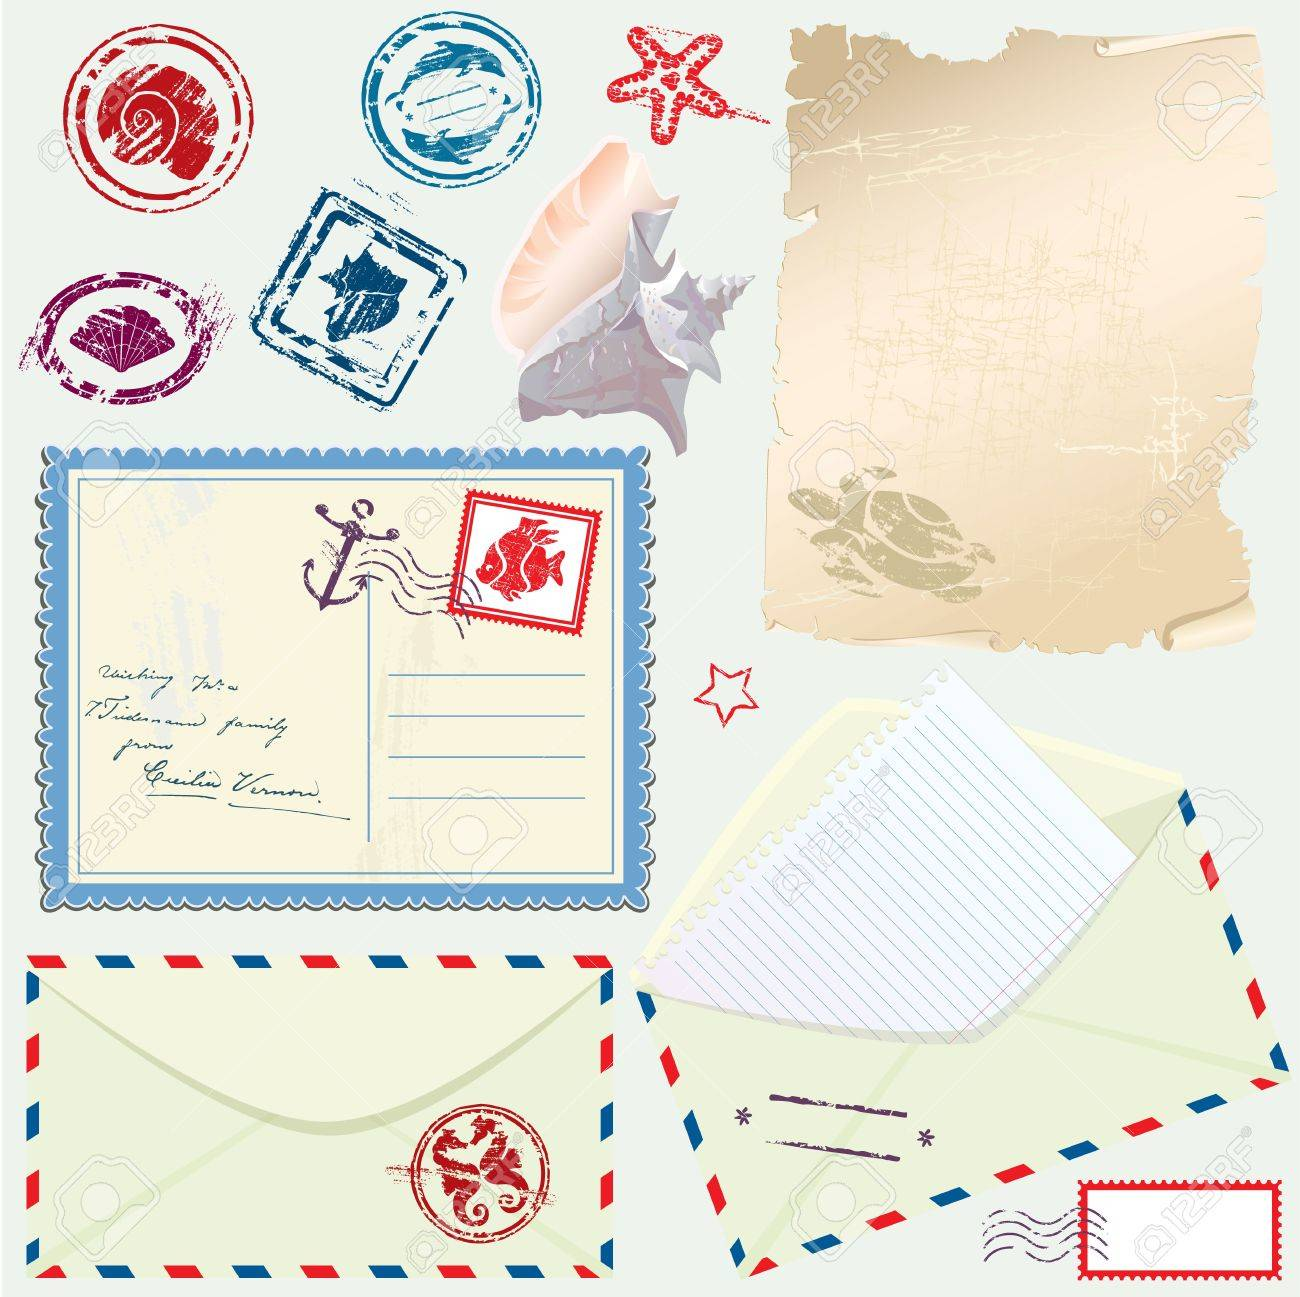 Scrapbook paper envelope - Postcard Envelope And Paper With Retro Nautical Stamps For Design And Scrapbook Stock Vector